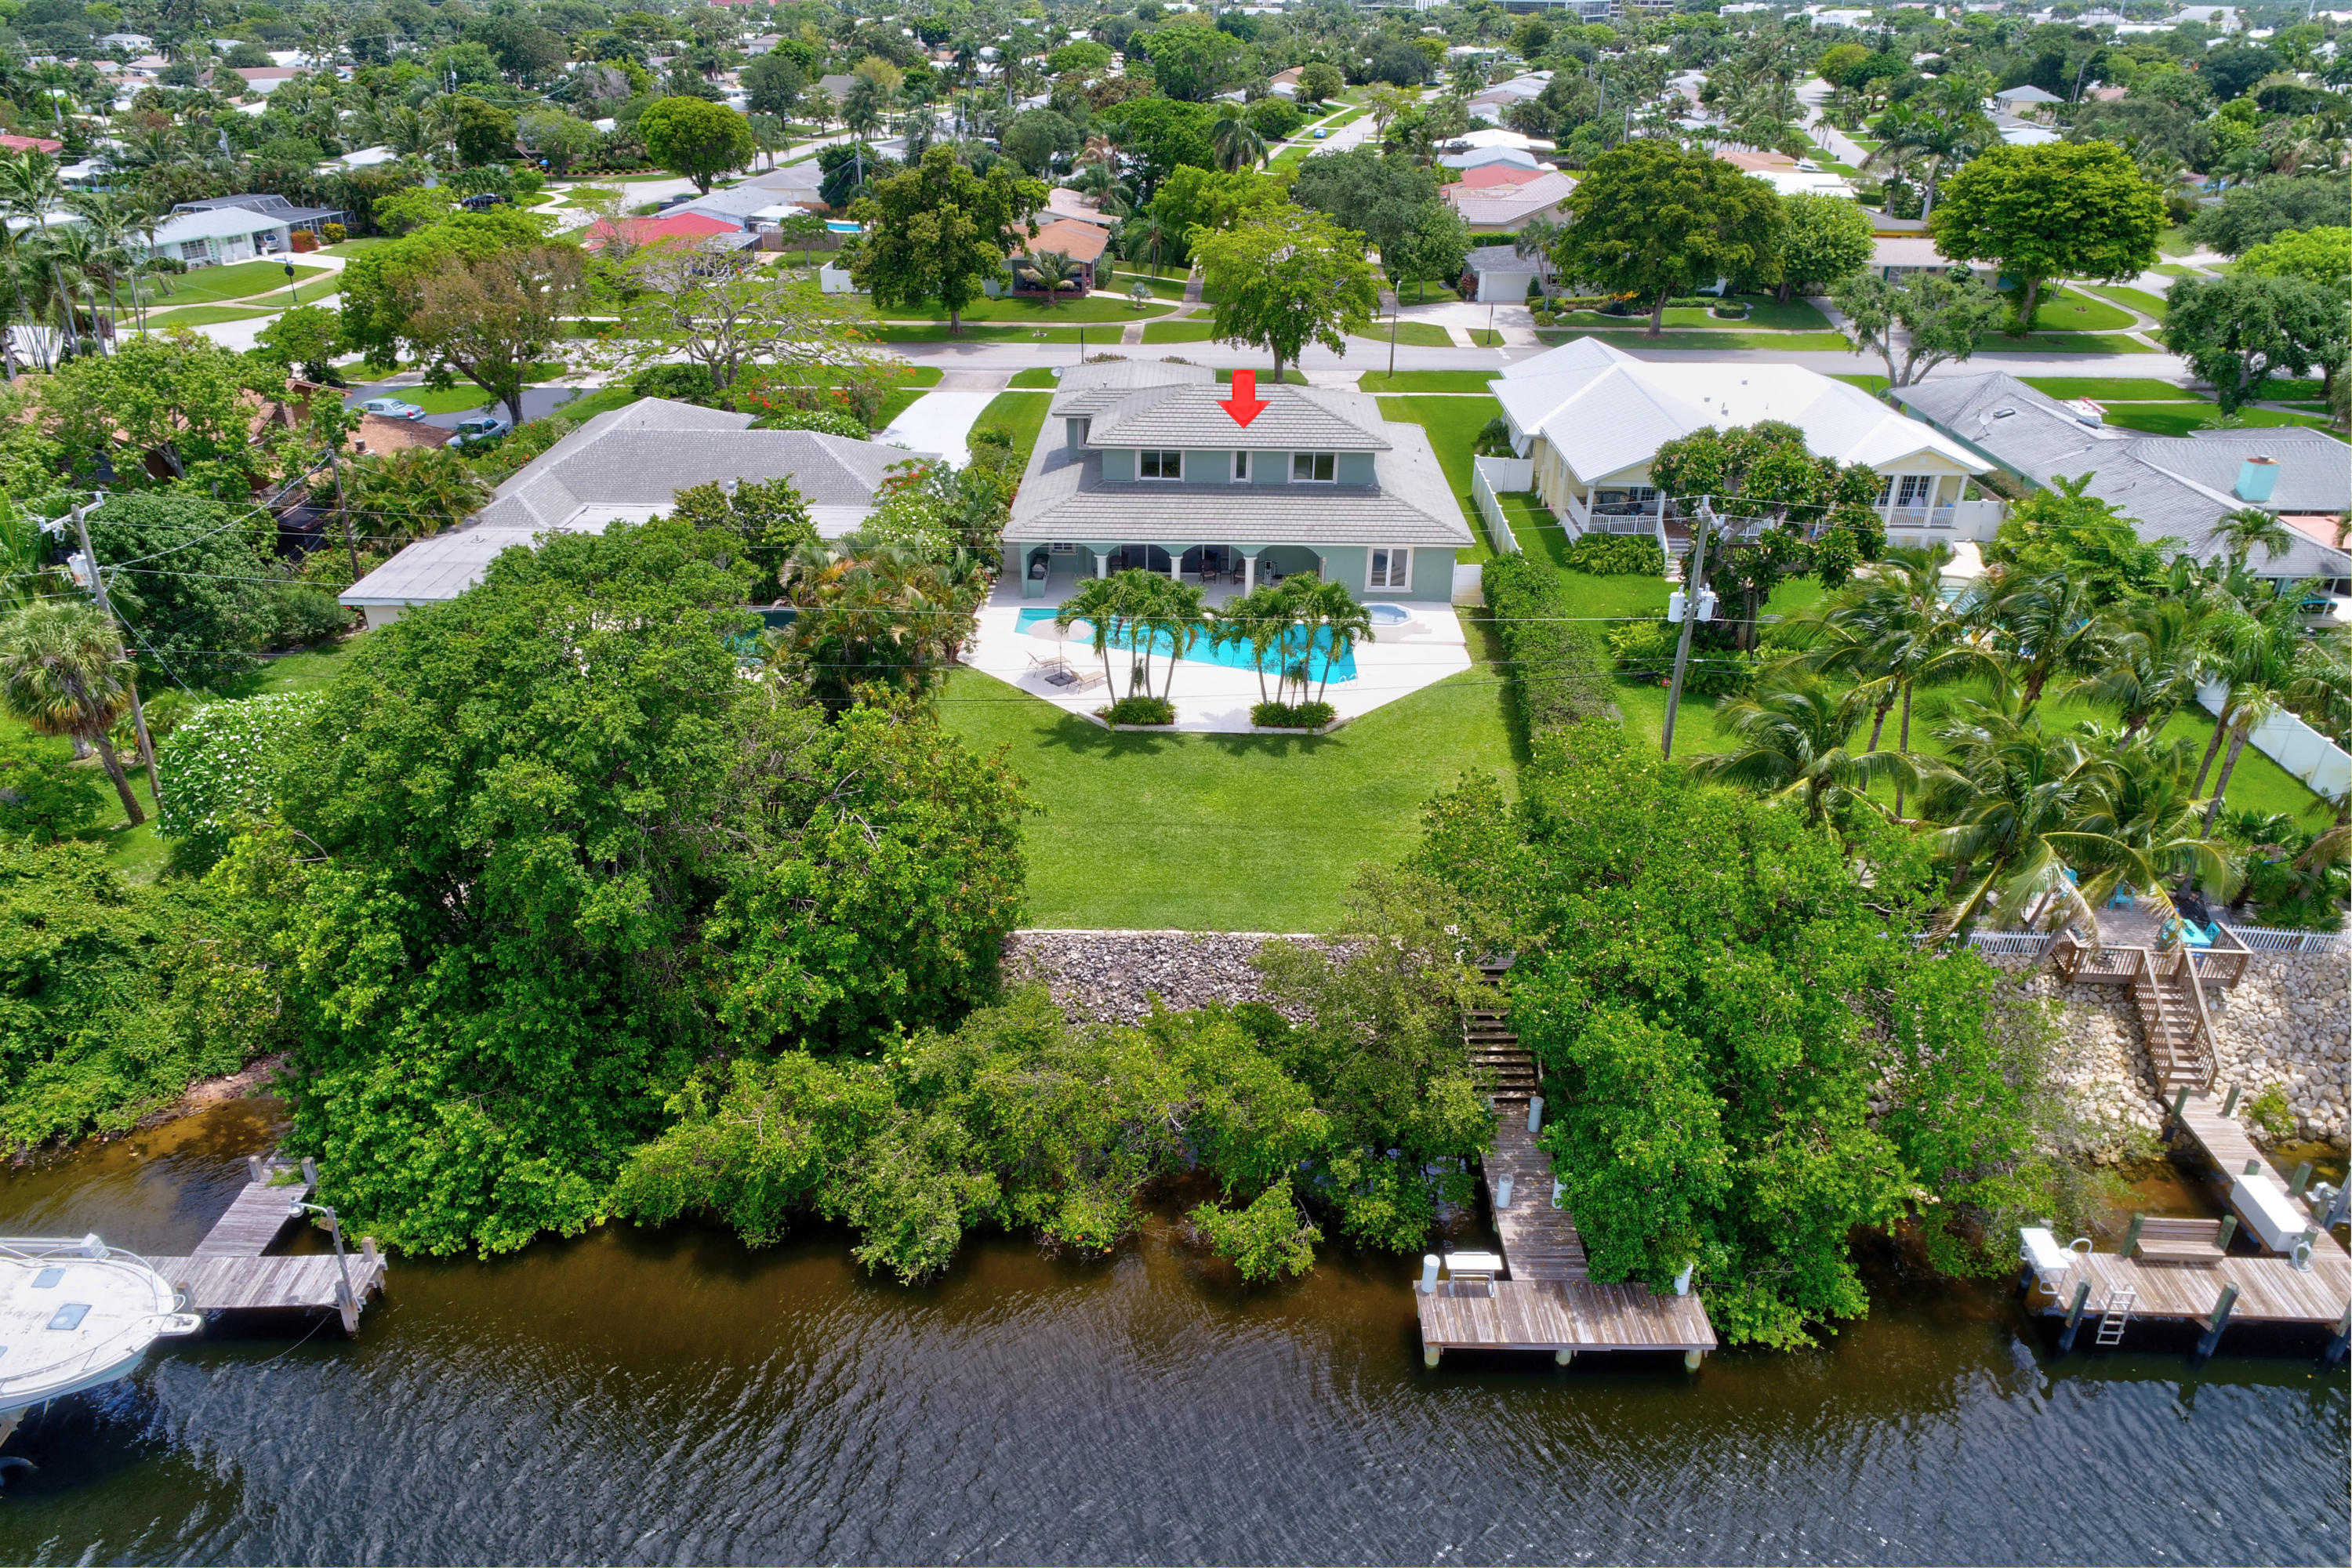 584 Anchorage Drive, North Palm Beach, Florida 33408, 4 Bedrooms Bedrooms, ,6 BathroomsBathrooms,A,Single family,Anchorage,RX-10437826